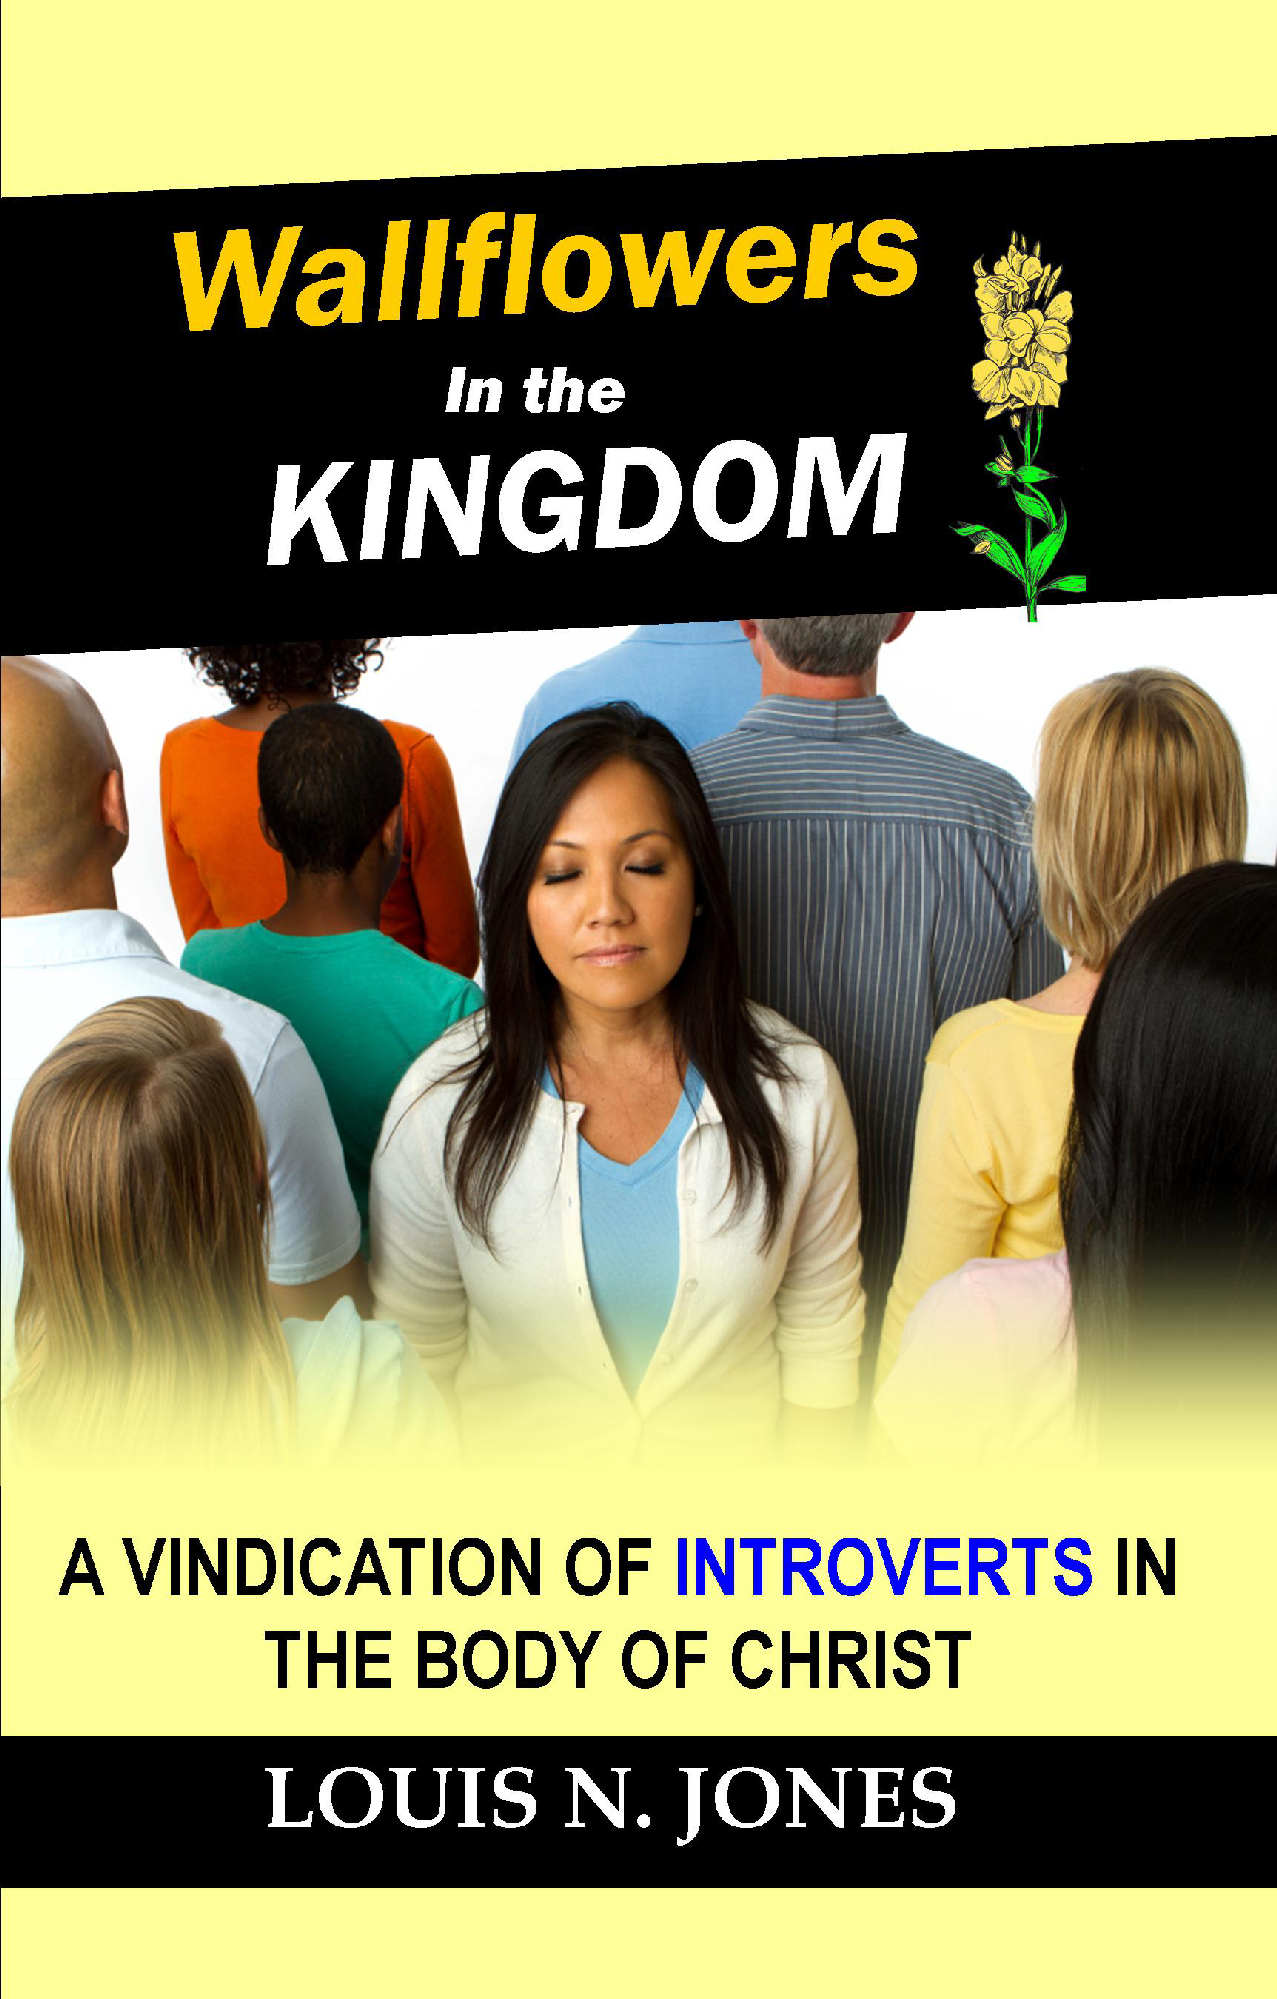 Wallflowers in the Kingdom, a Guide for Christian introverts and quiet types